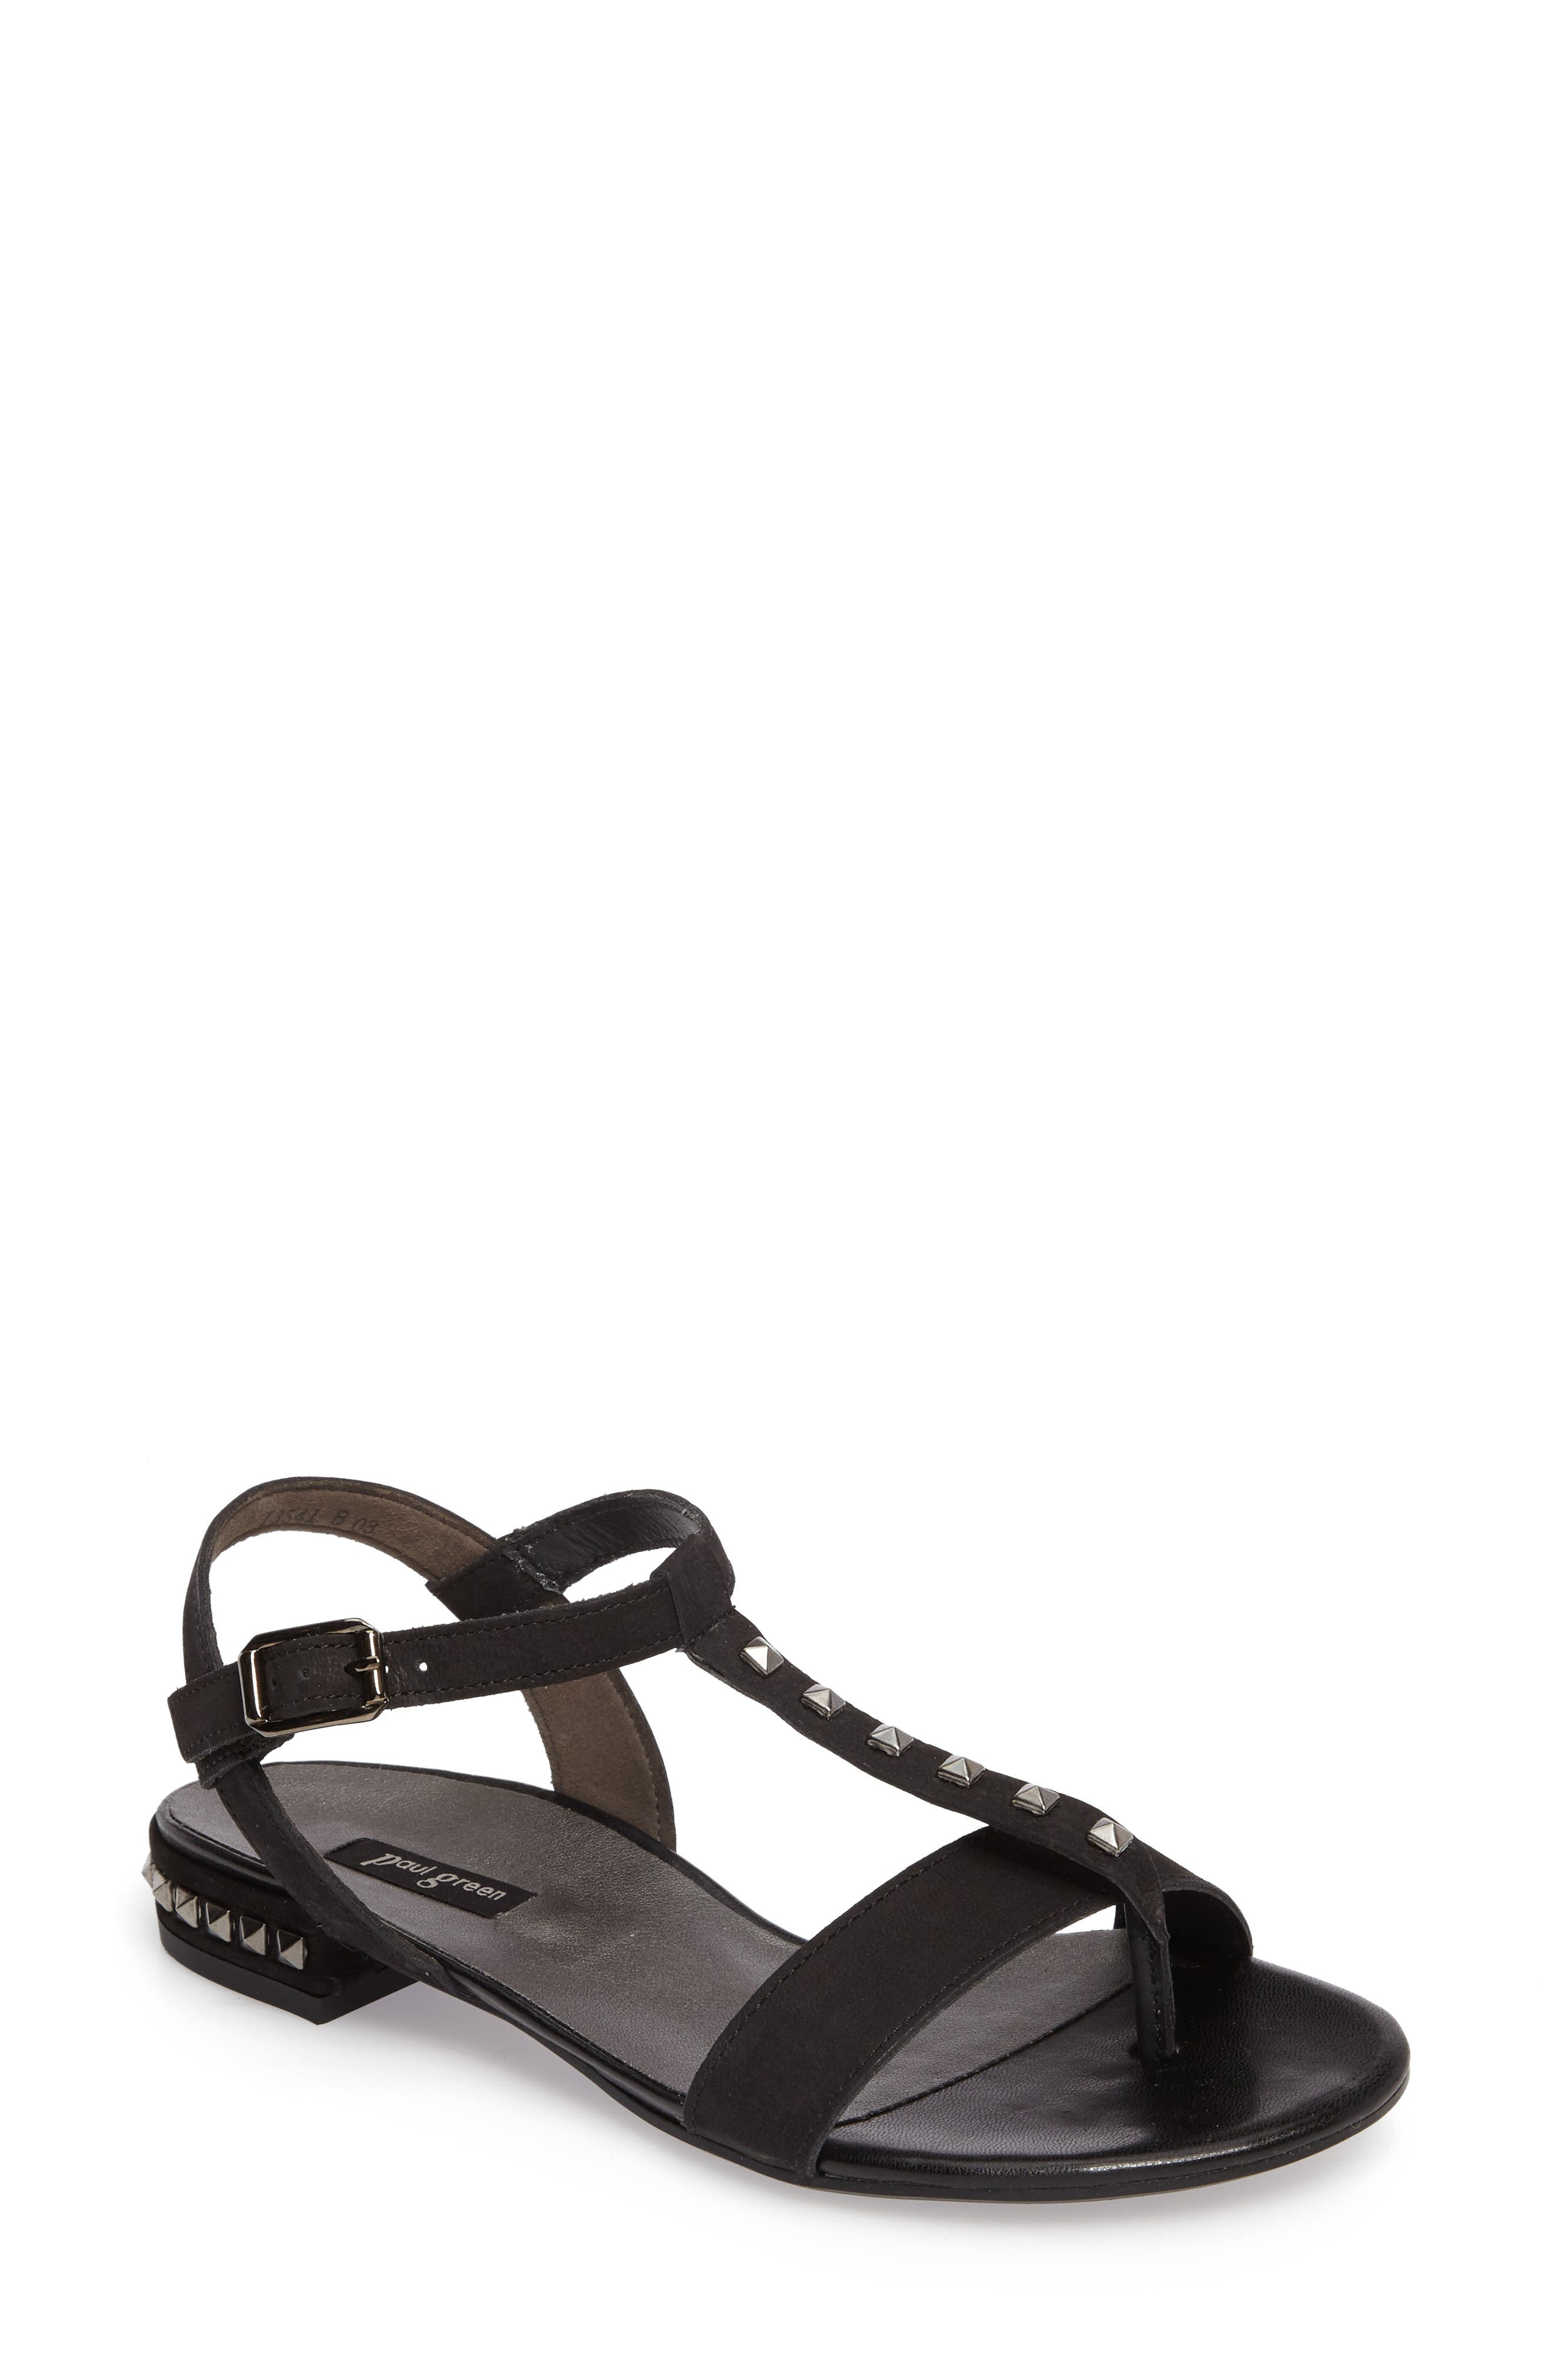 Paul Green Nepal T-Strap Sandal (Women)